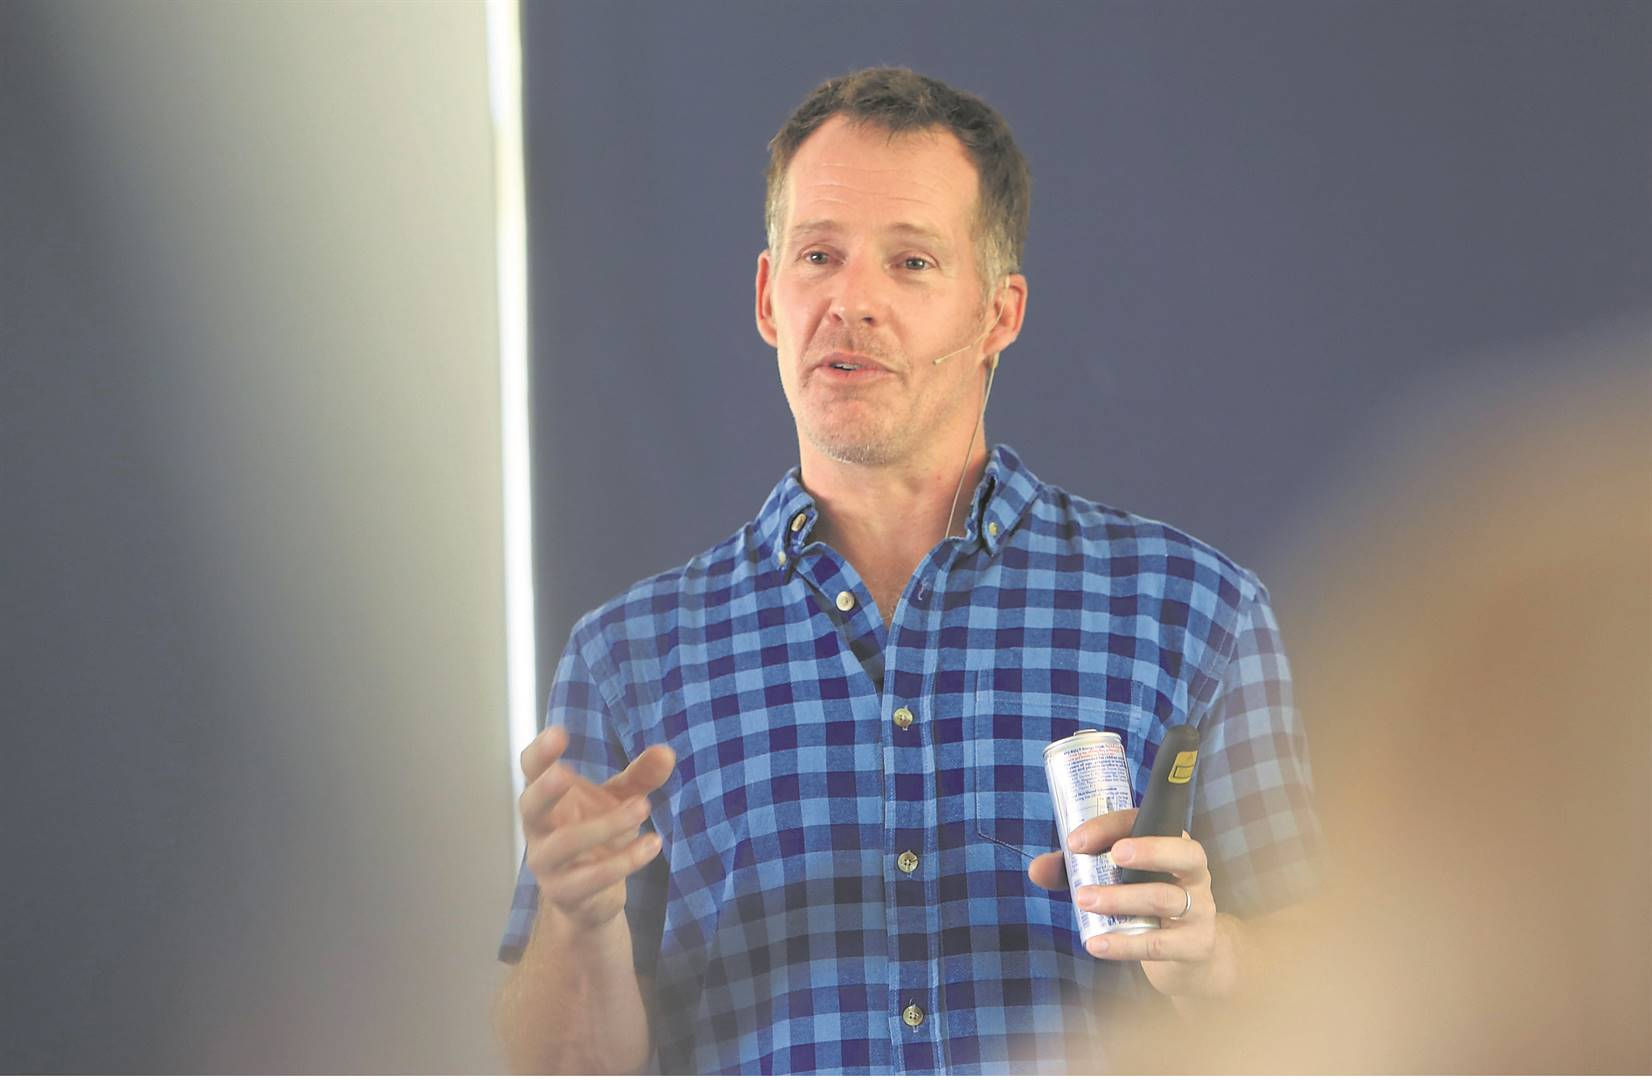 Steve McGown, who was held hostage for five years and eight months by Al-Qaeda in Mali, recently spoke to pupils of The Wykeham Collegiate about having a positive attitude and sticking to your goals. PHOTO: jackie clausen